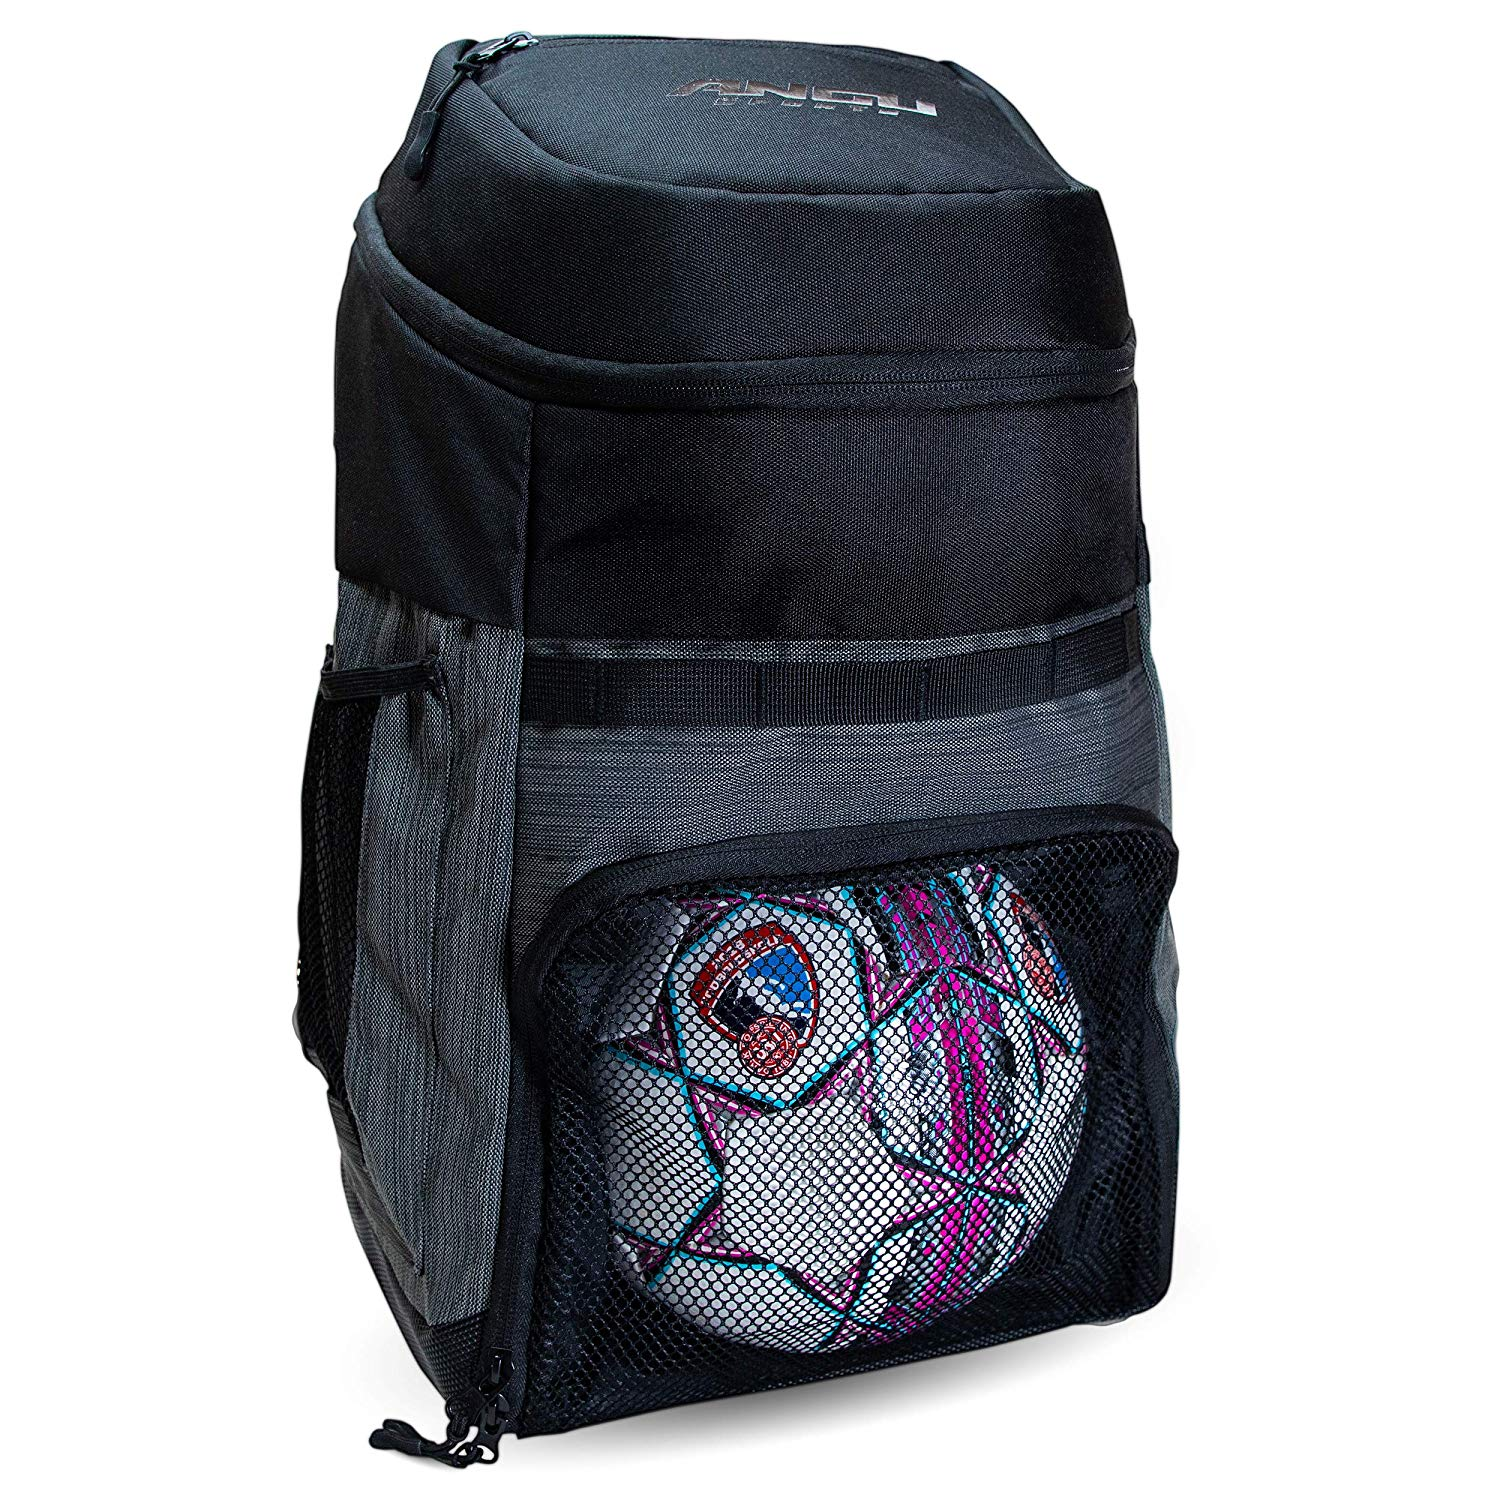 Soccer Bags with Ball Holder- Use as Soccer Backpack, Basketball Backpack, Volleyball Bag of Football Bag